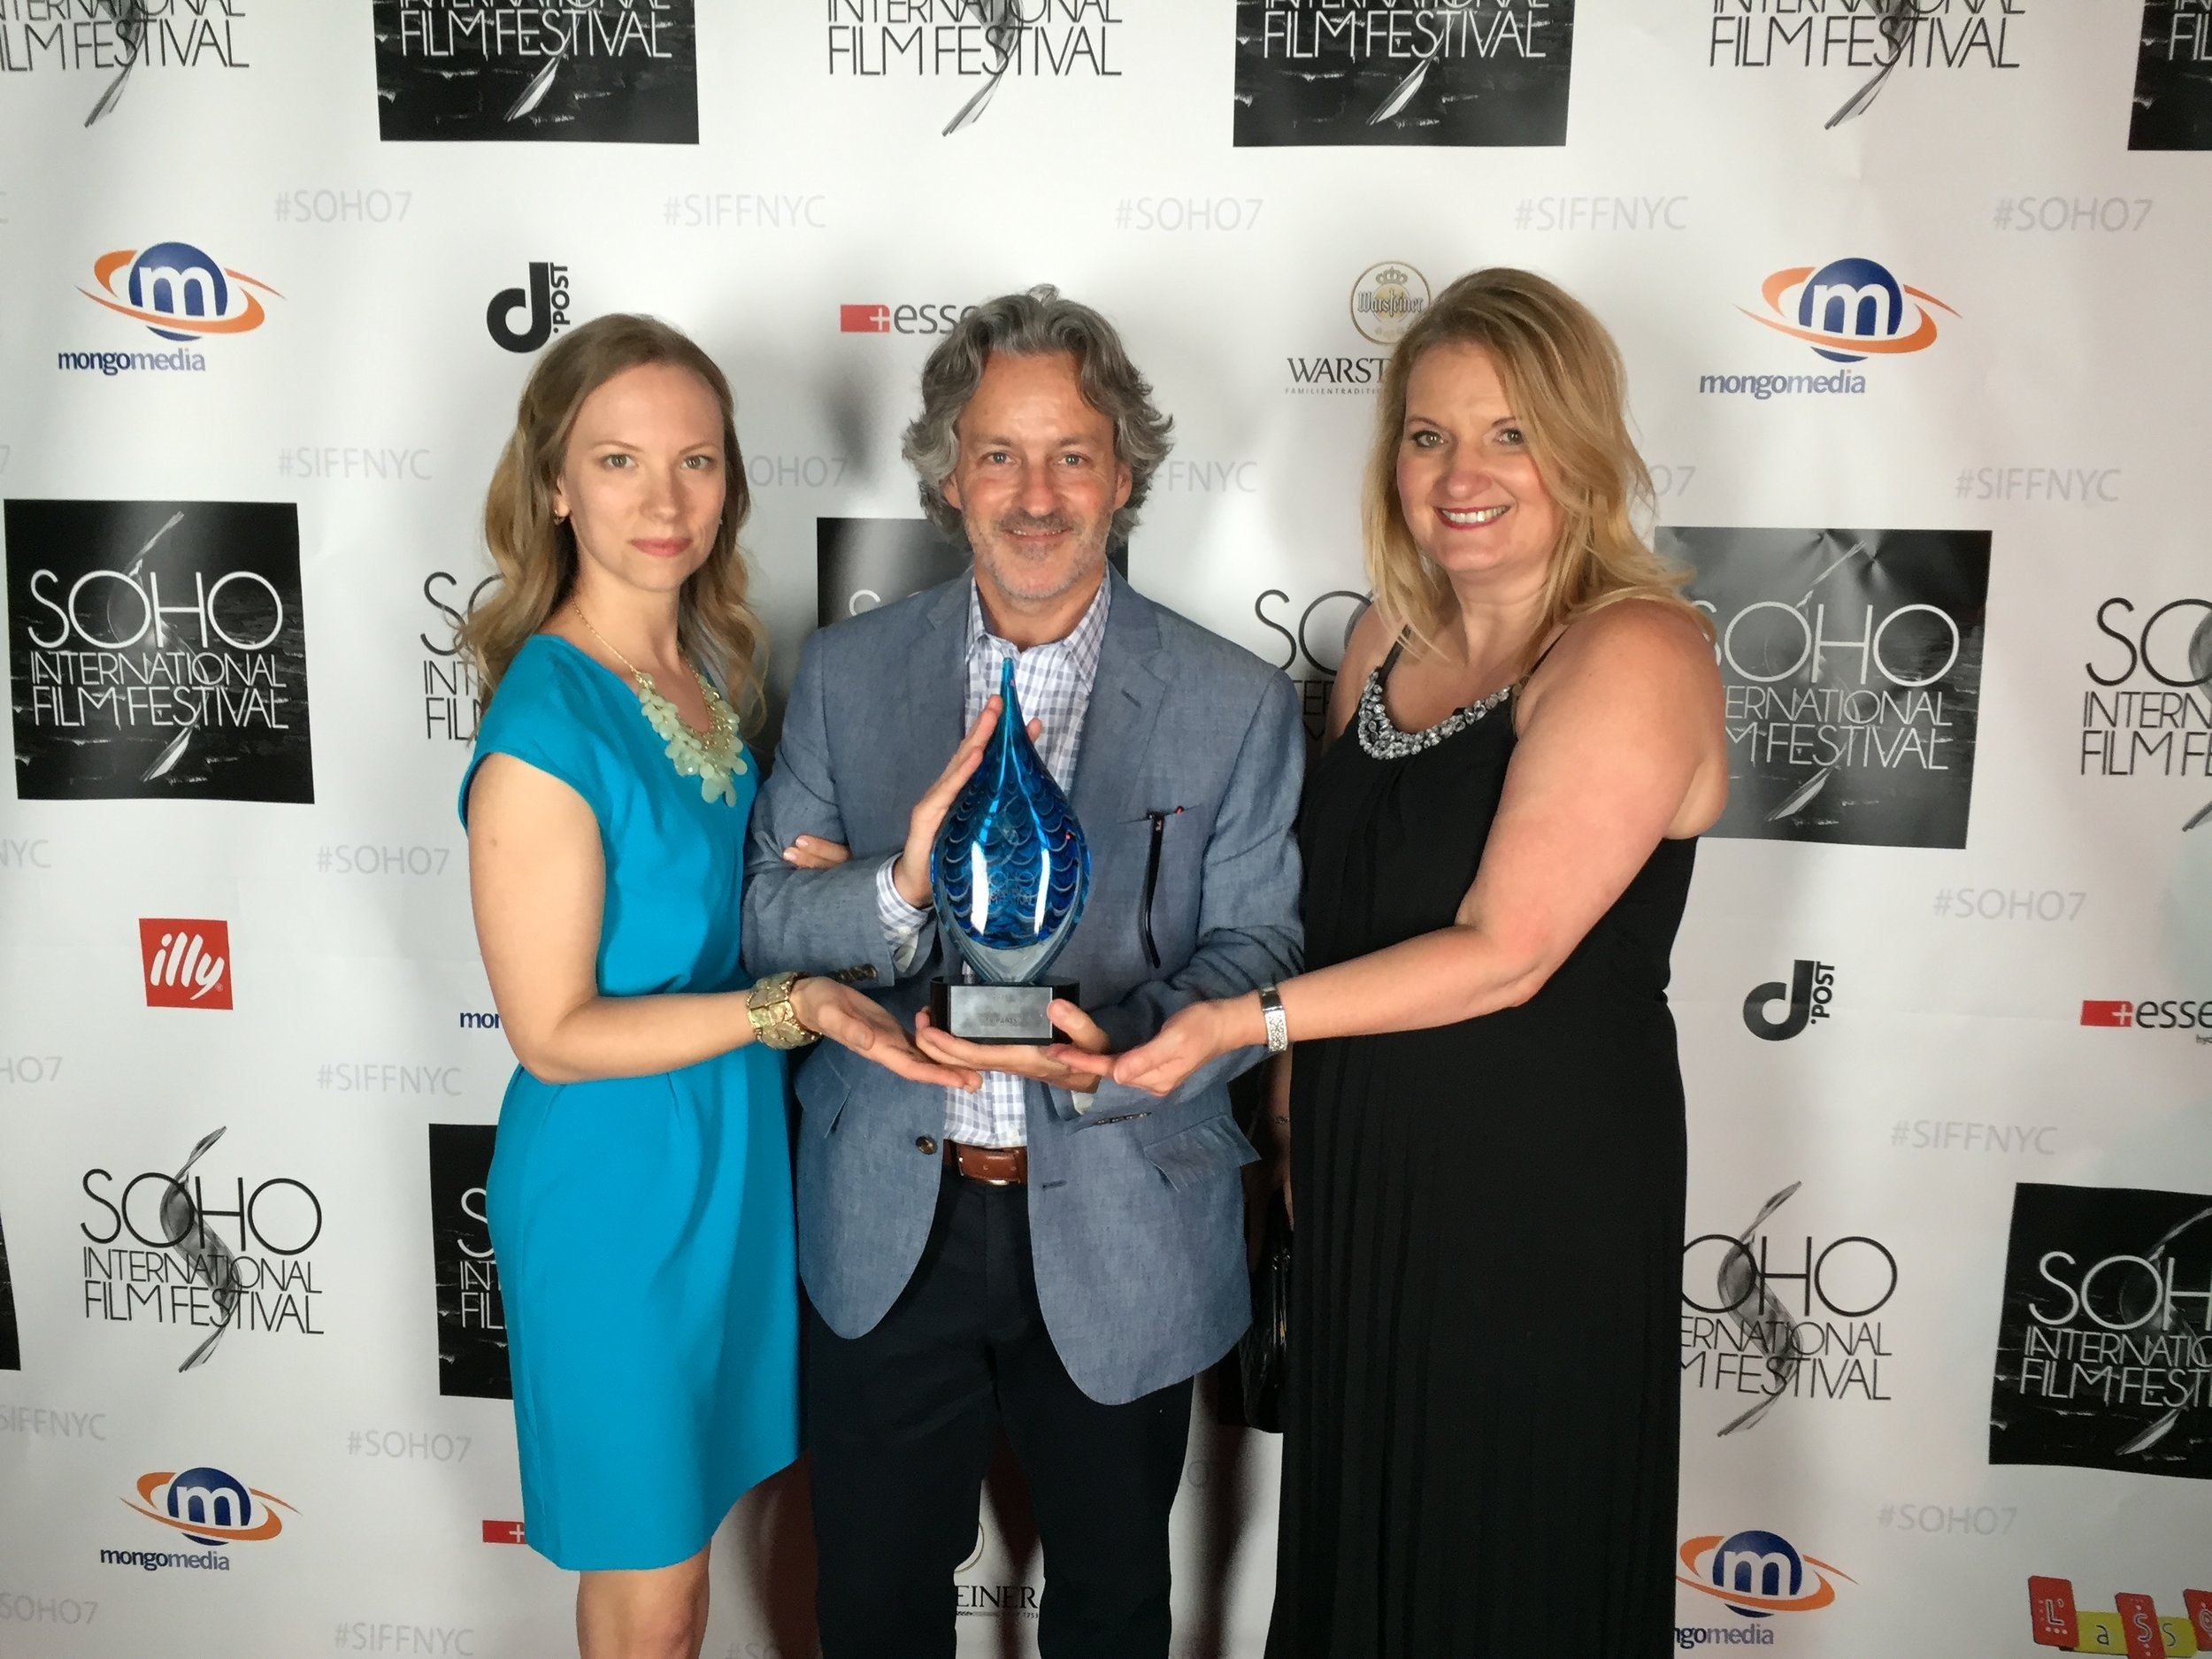 """Accepting the Audience choice award for BEST FEATURE at the Soho International Film Festival for """"79 Parts"""", with producer John Overend and Casting director Donna McKenna."""